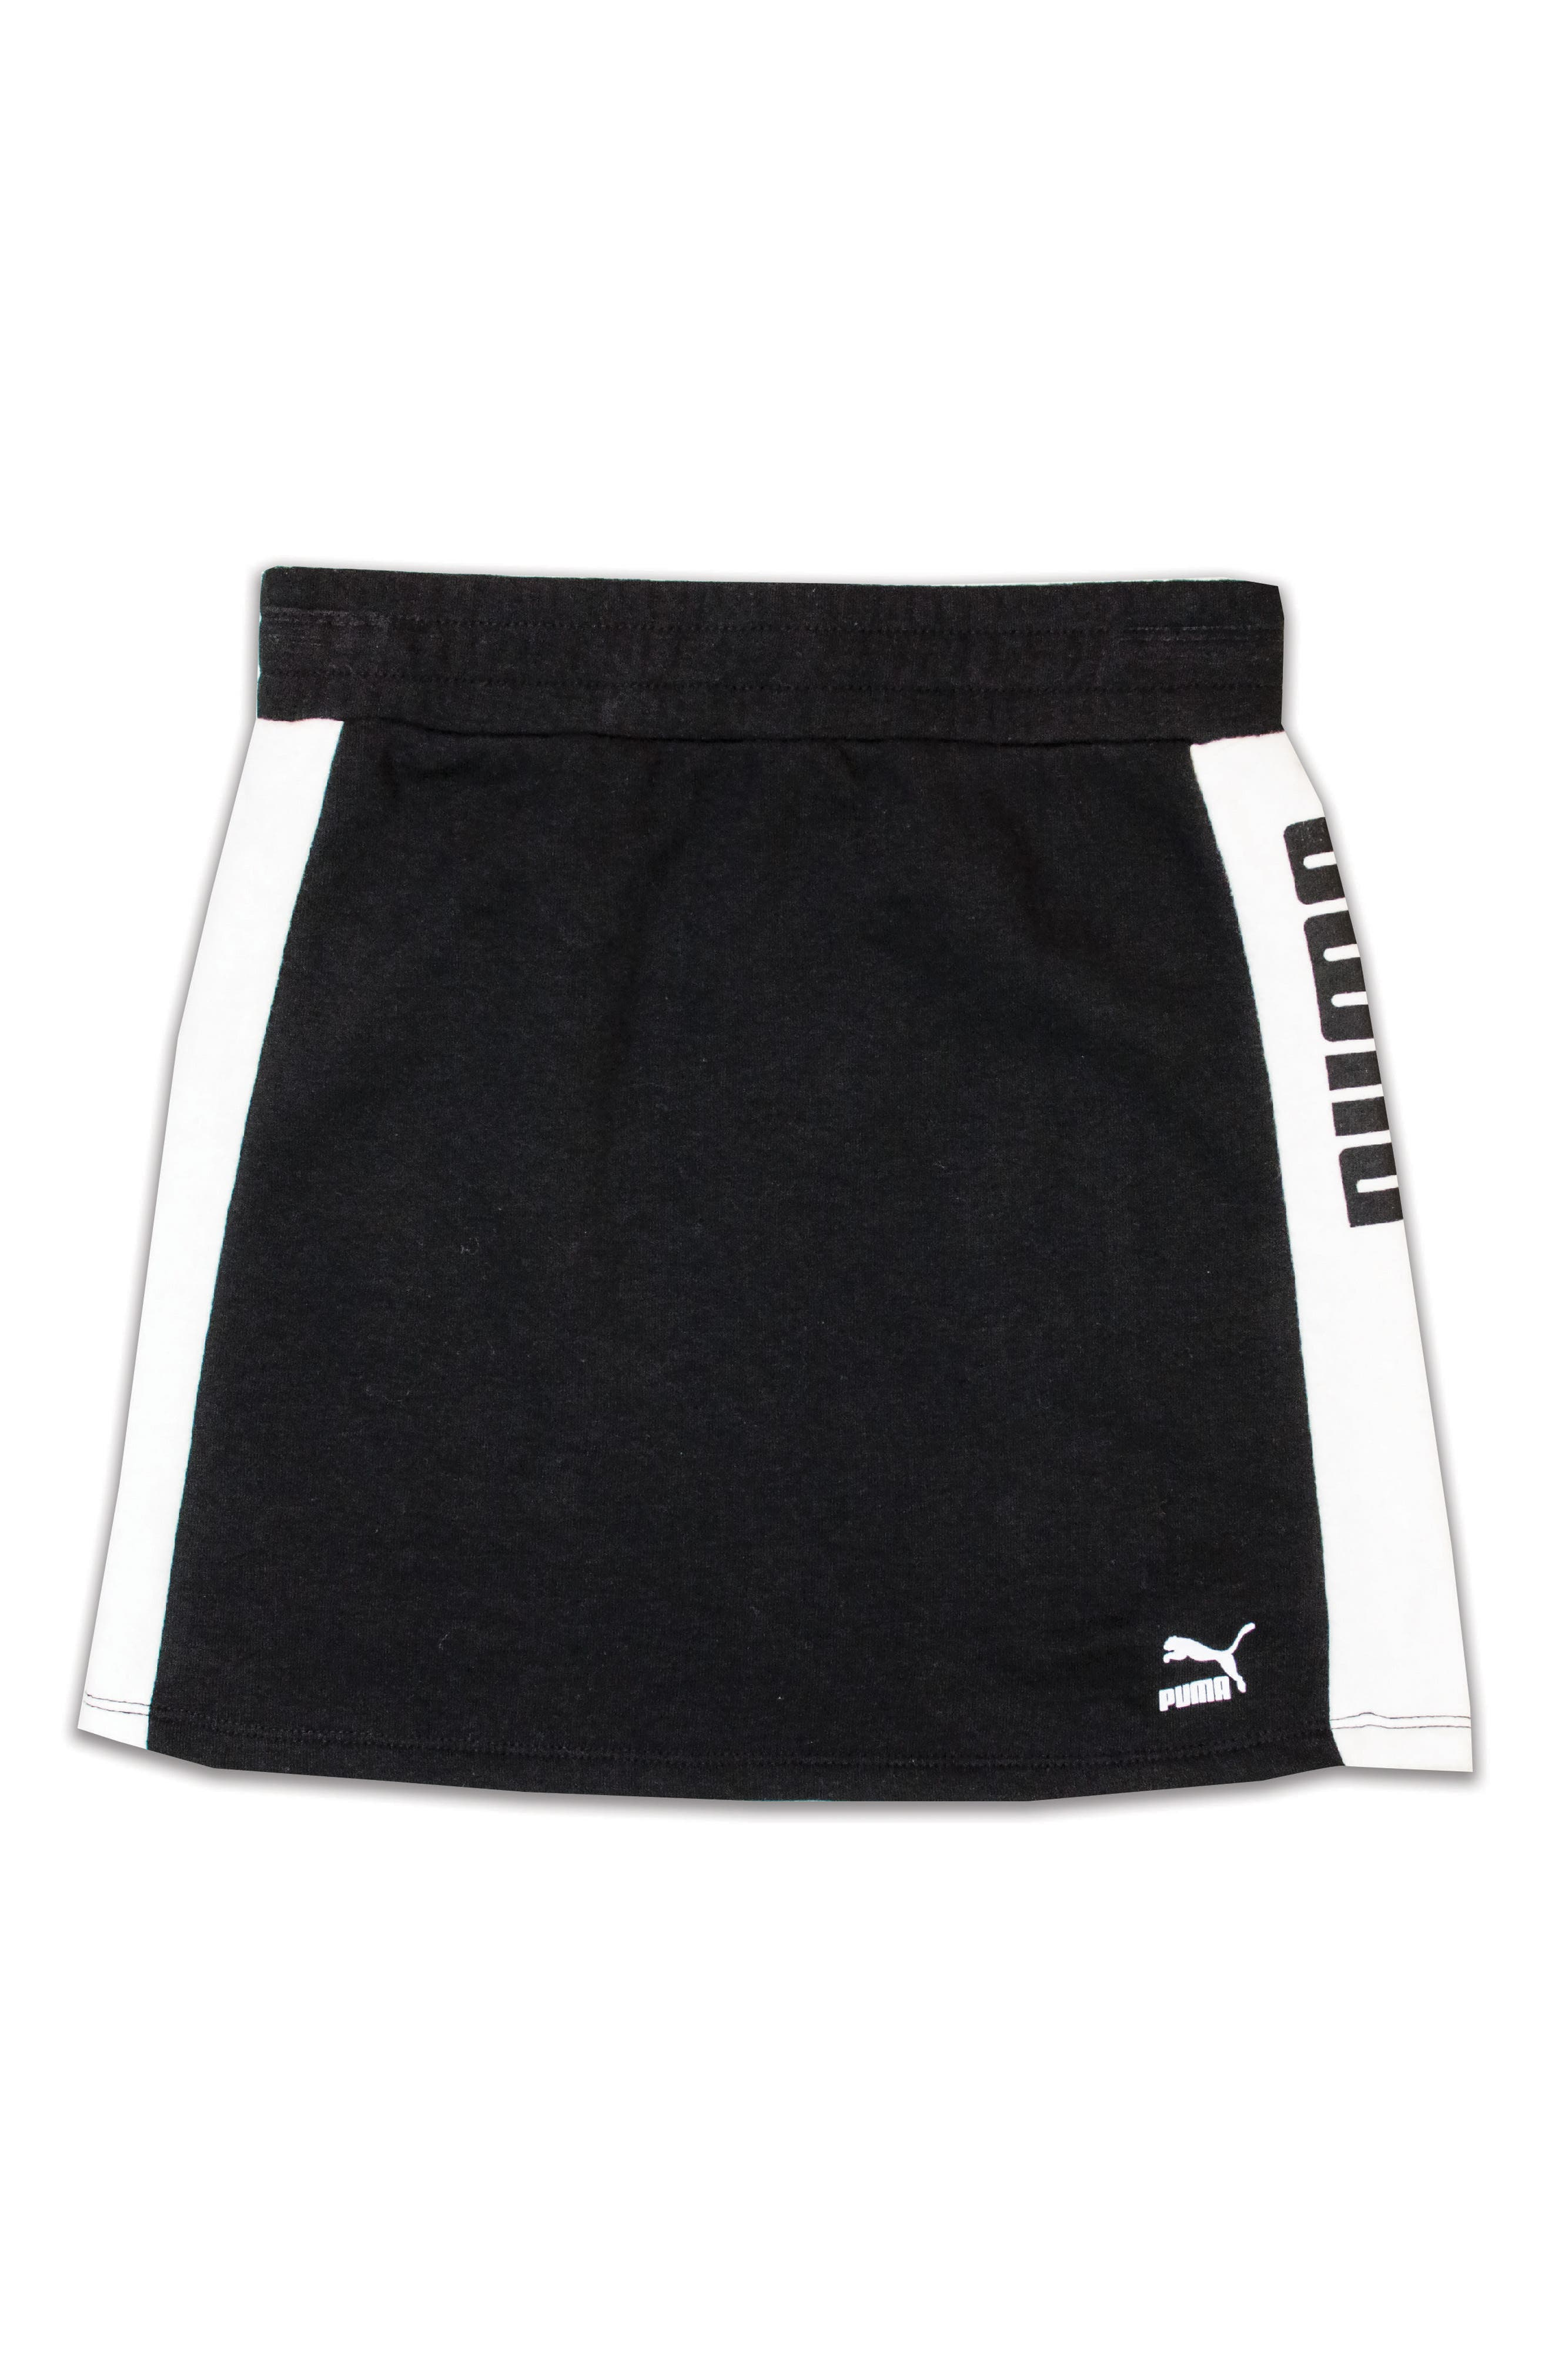 French Terry Skirt,                         Main,                         color, Puma Black